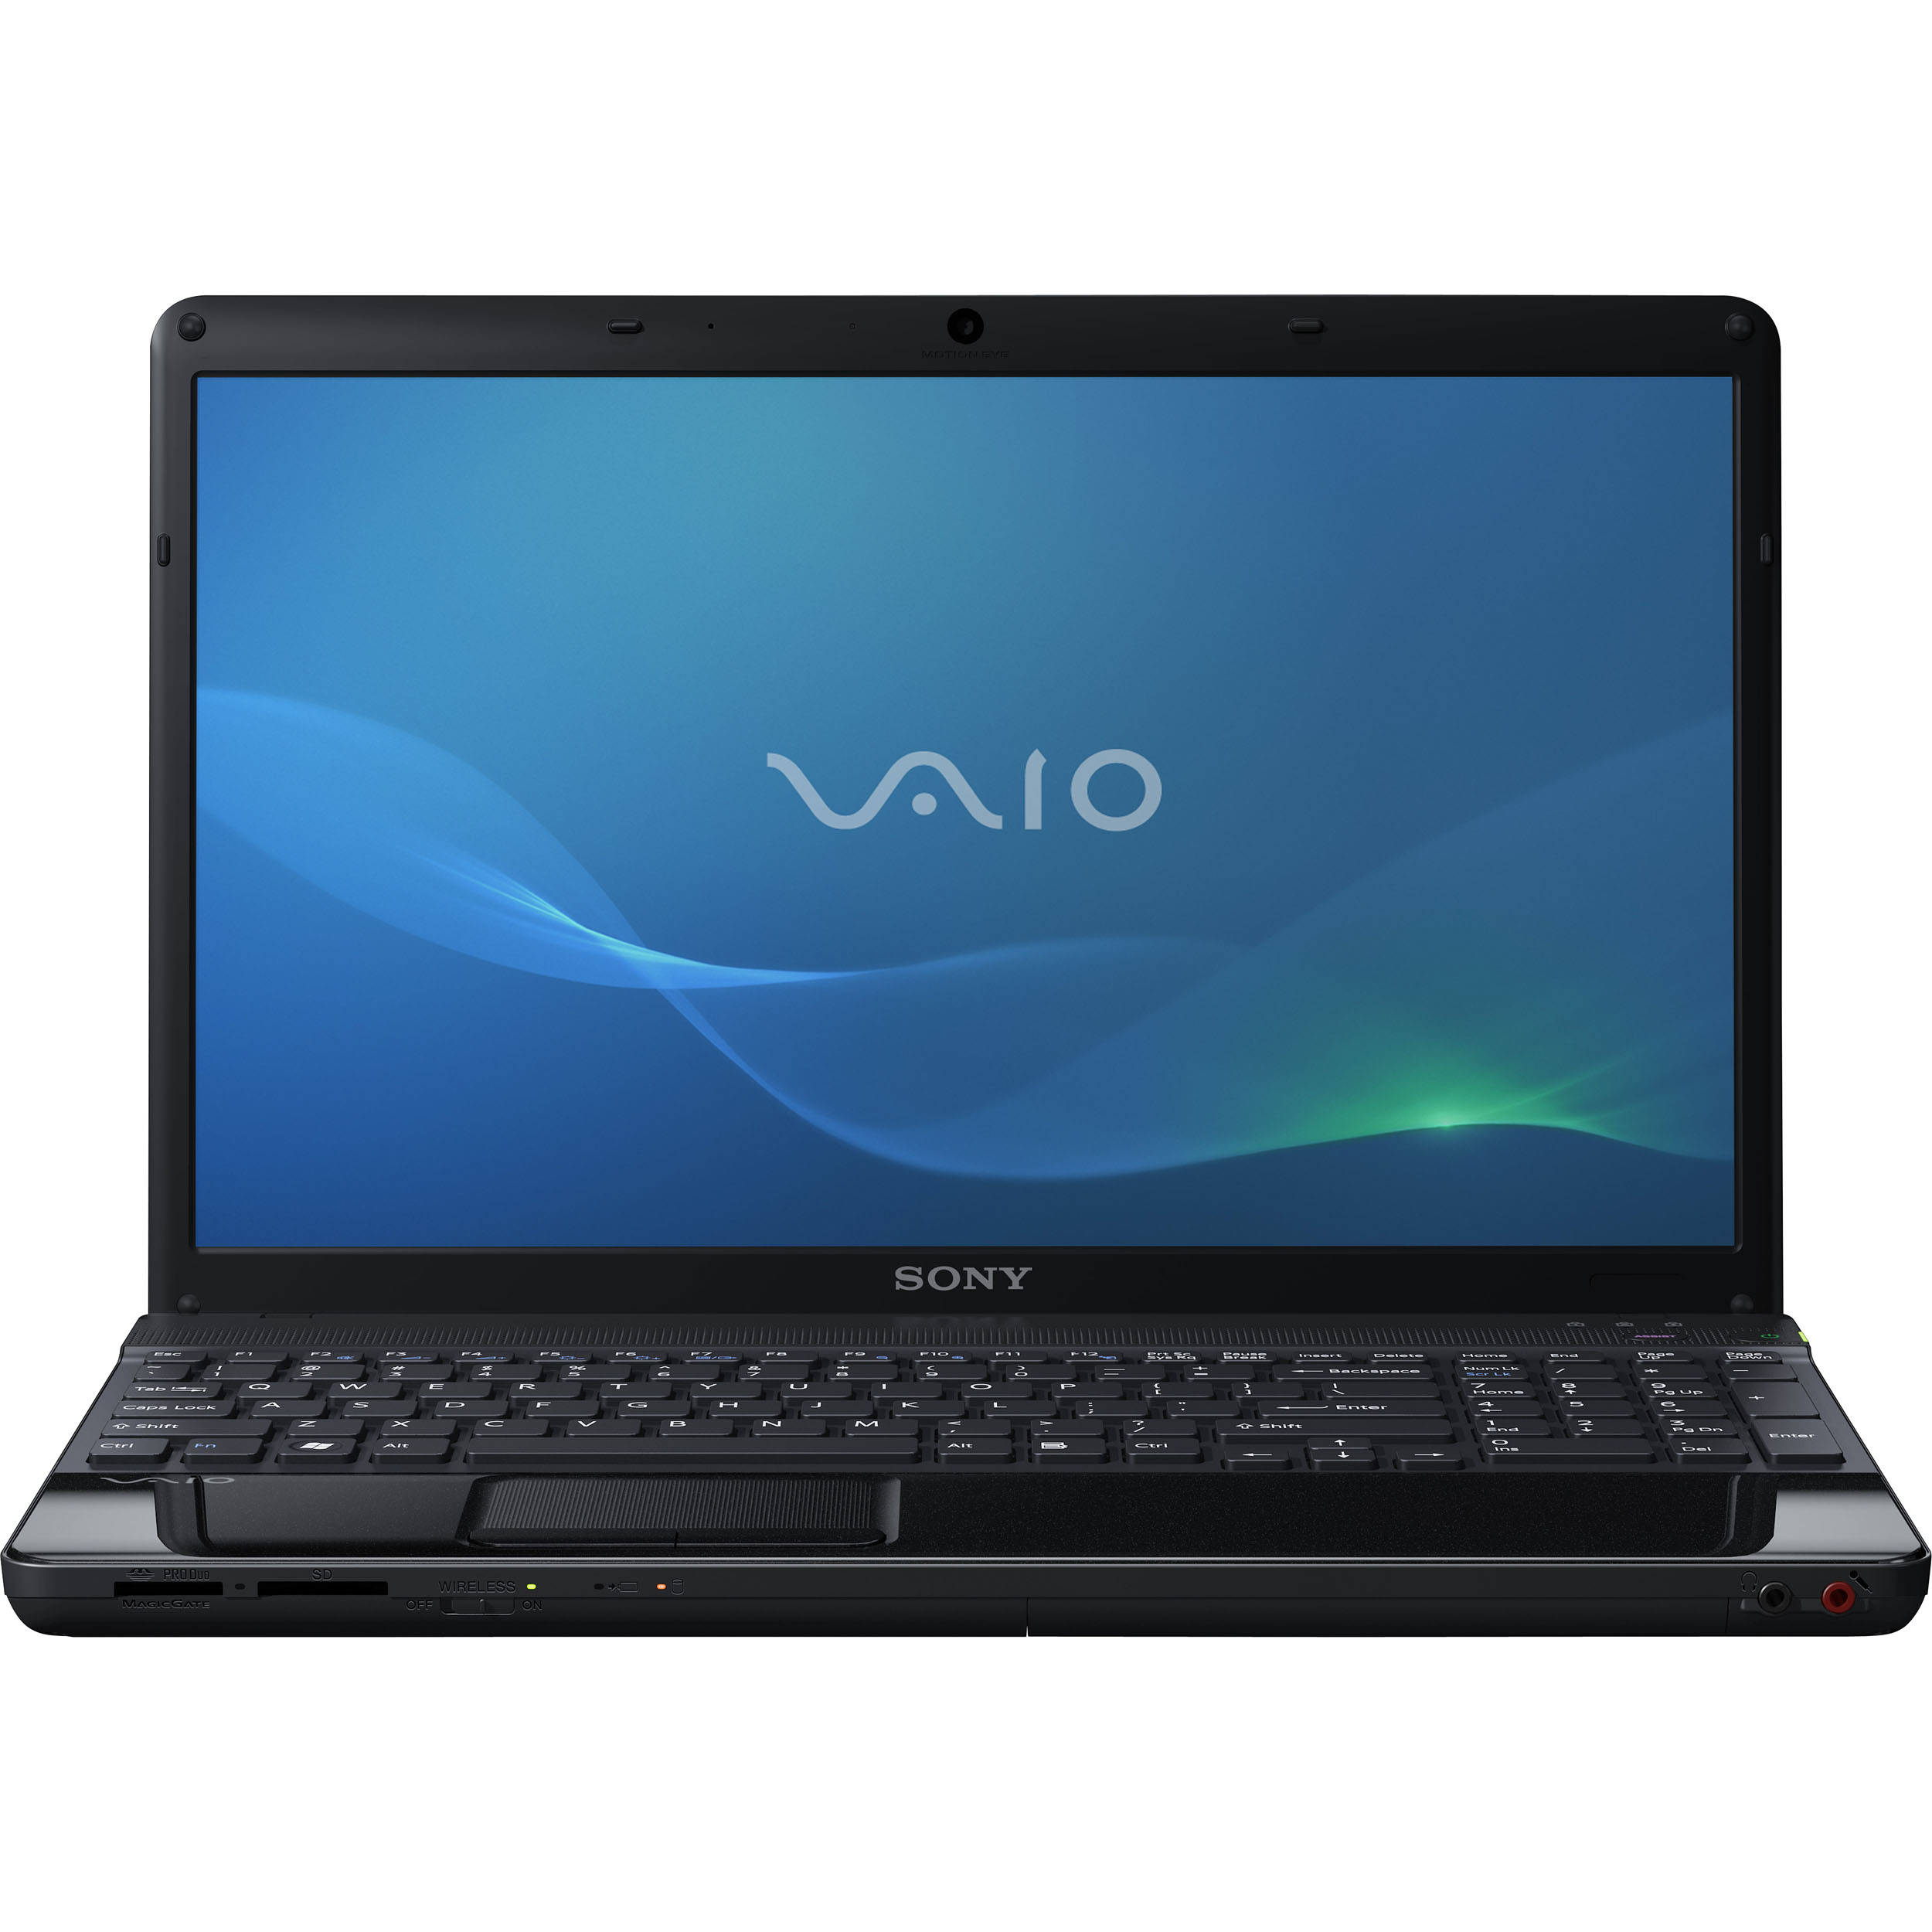 SONY VAIO VPCEE32FXWI DRIVERS FOR WINDOWS